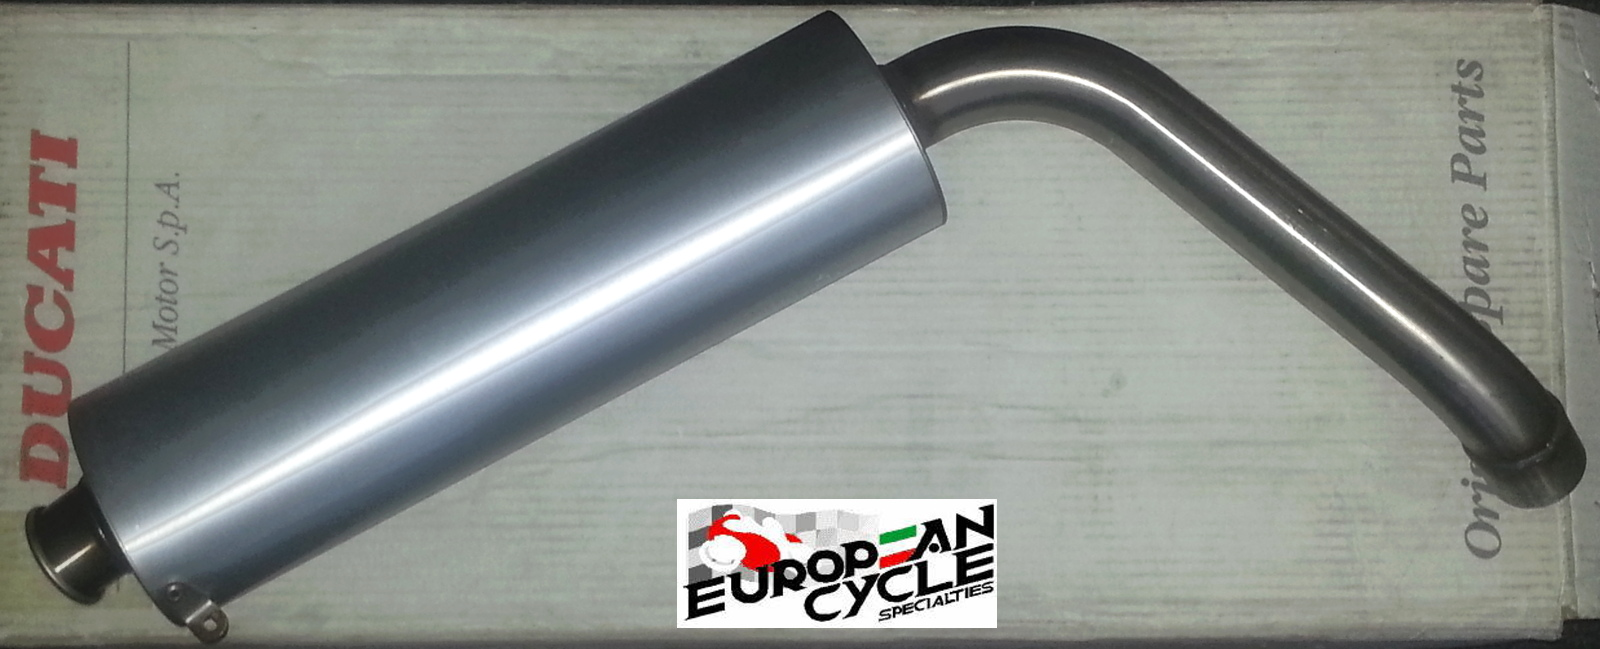 OEM Ducati 748 916 996 998 Superbike Left Hand Silencer 57410393A